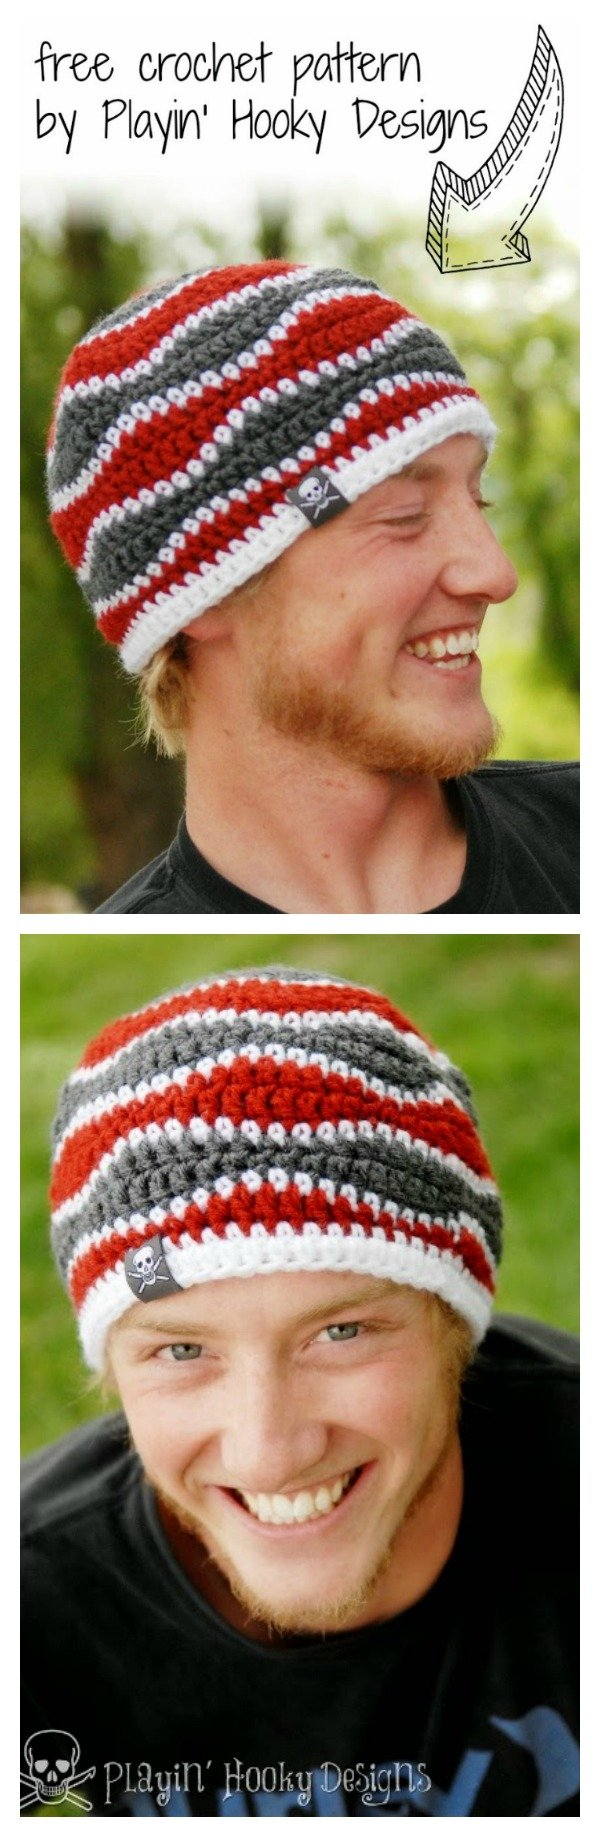 10 Free Mens Crochet Patterns For Holiday Gift Ideas